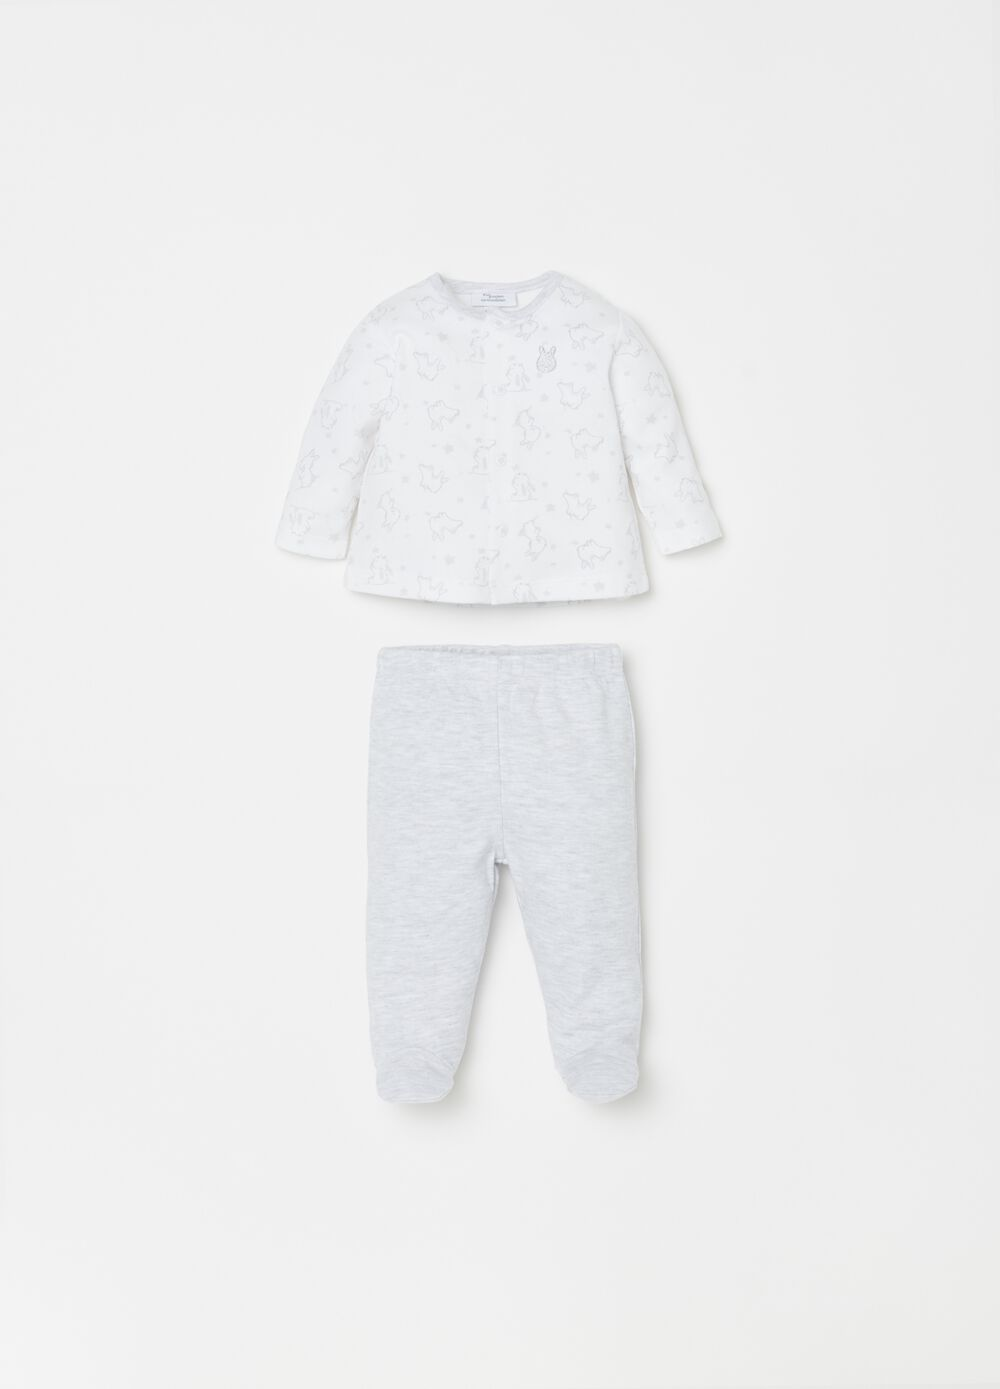 T-shirt and trousers set in 100% cotton with embroidery